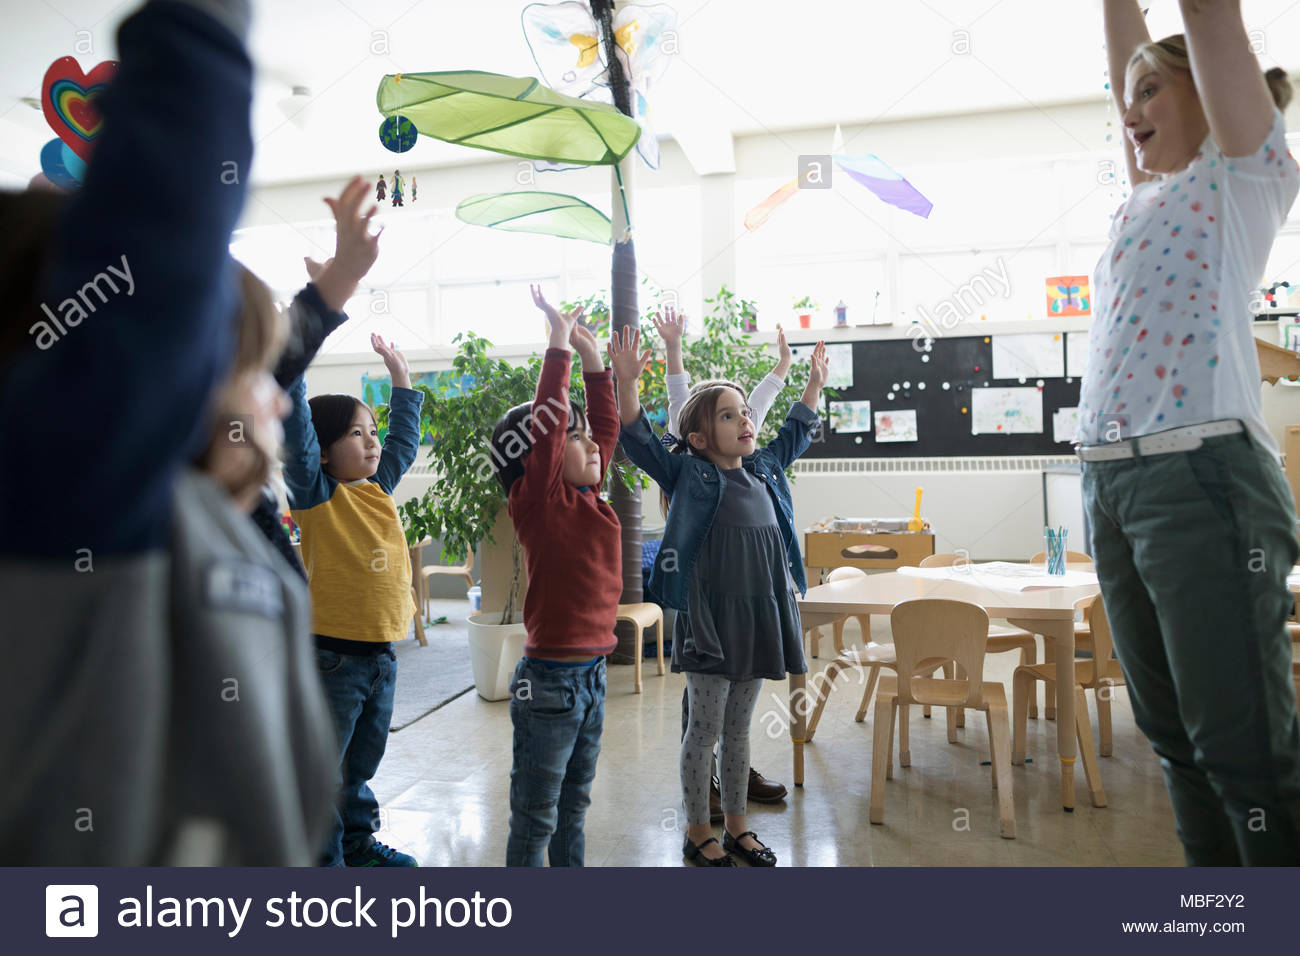 Preschool teacher and students exercising with arms raised in classroom - Stock Image